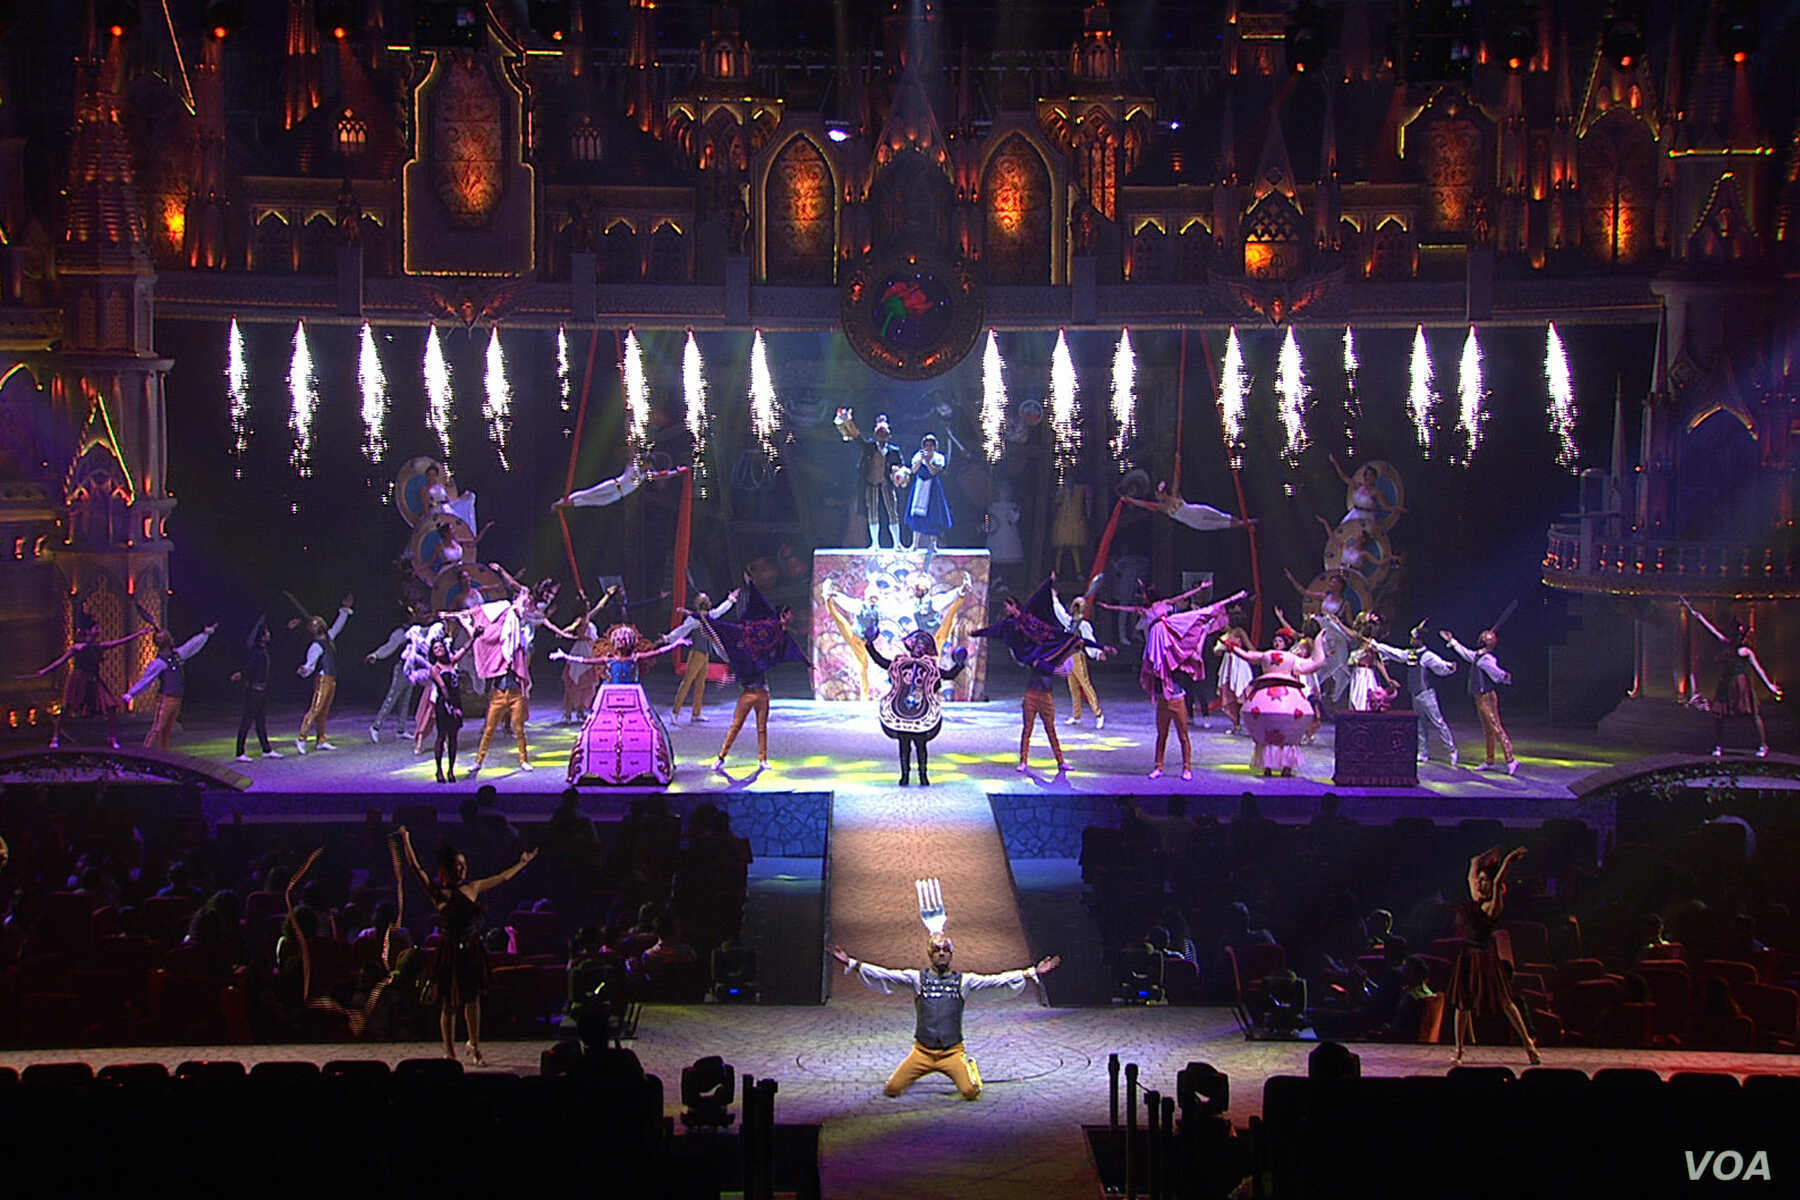 """Disney's """"The Beauty and the Beast"""" Broadway show on stage in India."""